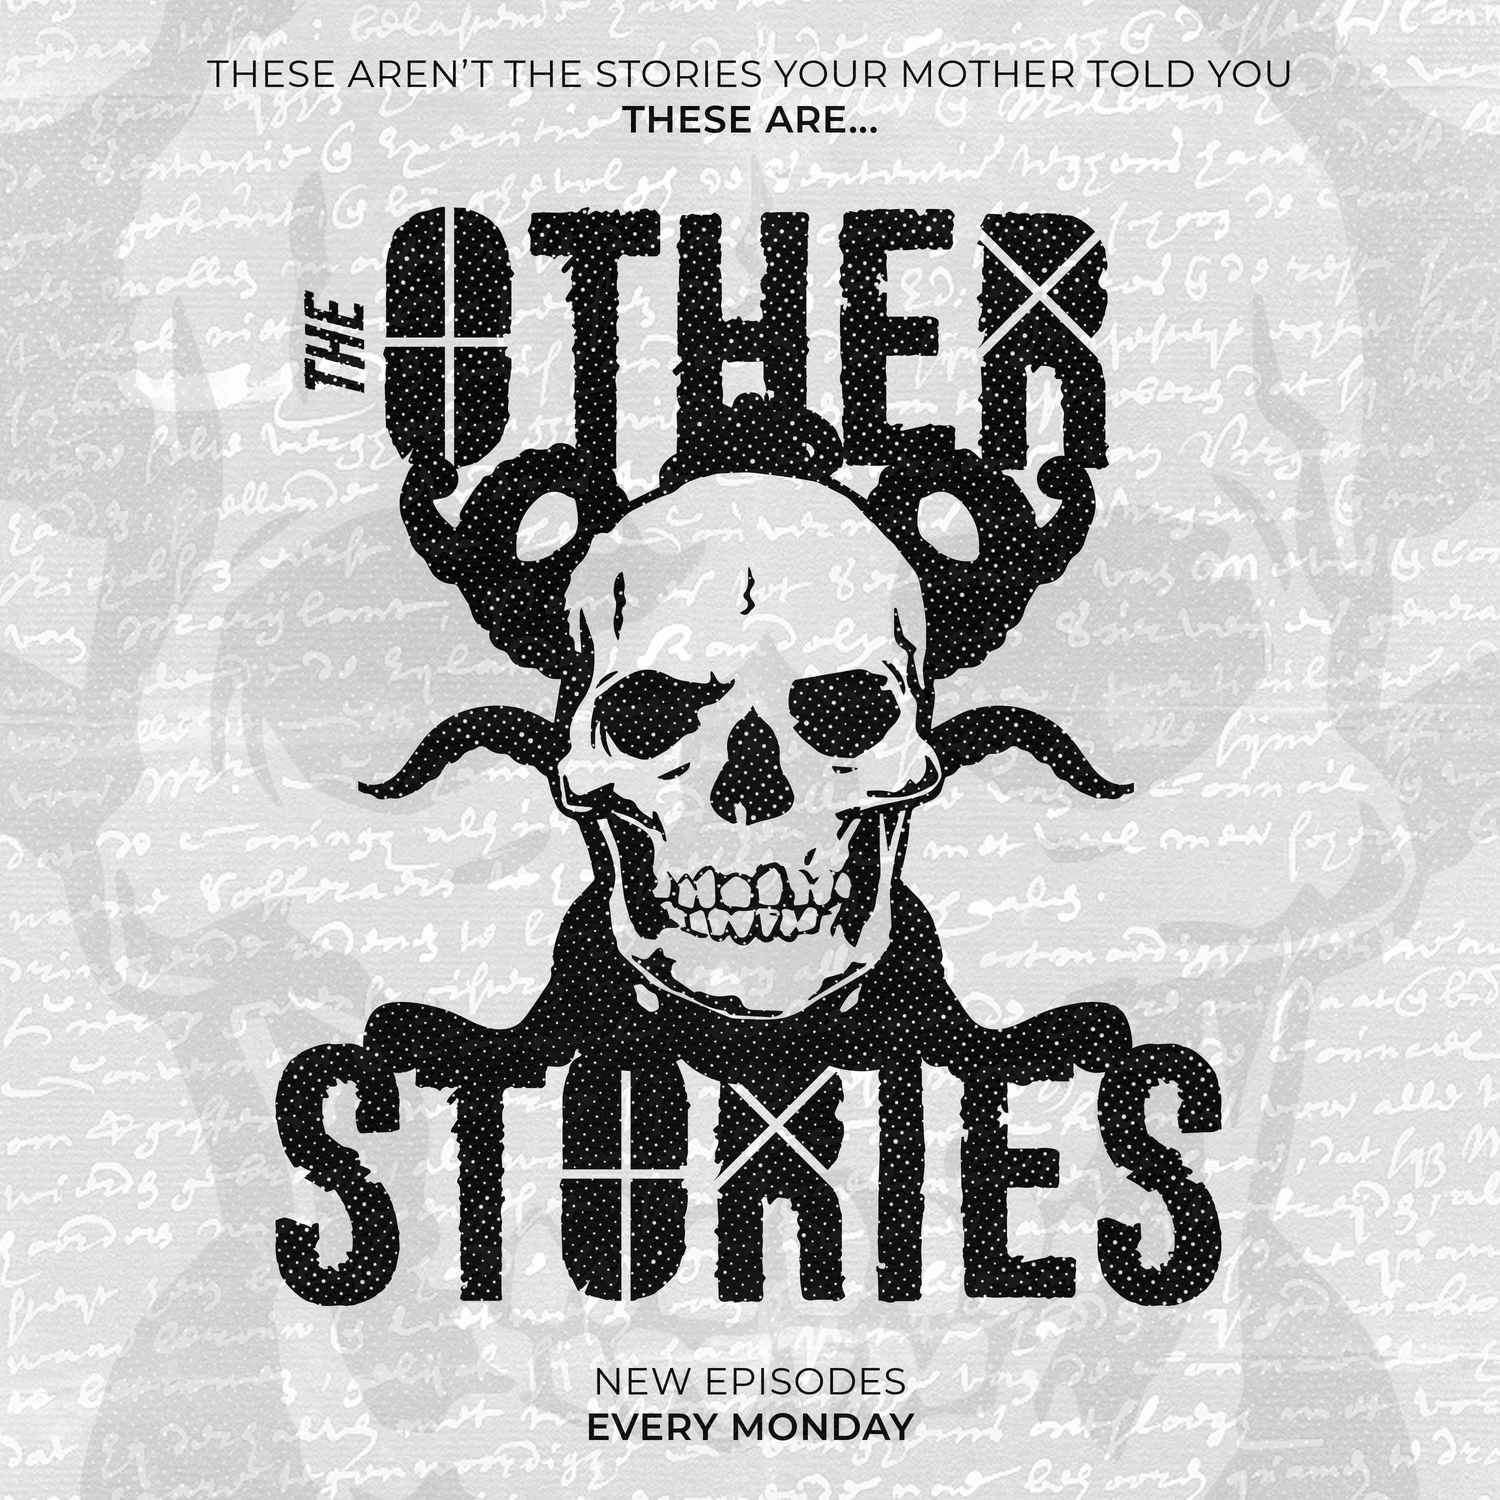 The Other Stories   Sci-Fi, Horror, Thriller, WTF Stories